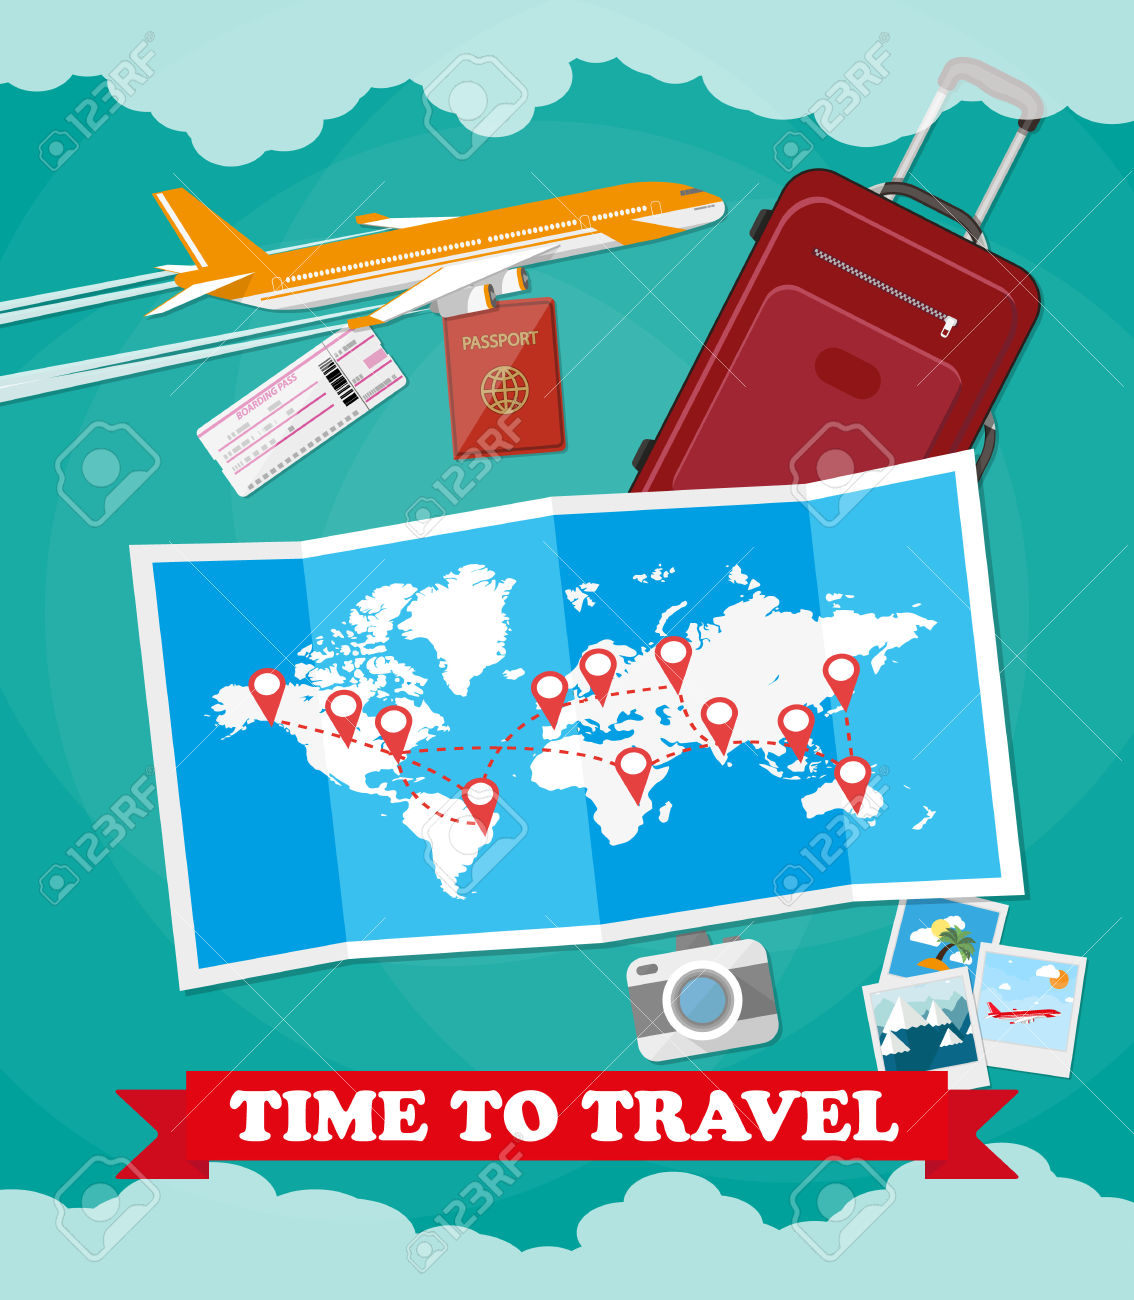 Traveling plane destination clipart image black and white stock Red Suitcase Travel Bag, Passport, Airplane Ticket, Photo Camera ... image black and white stock